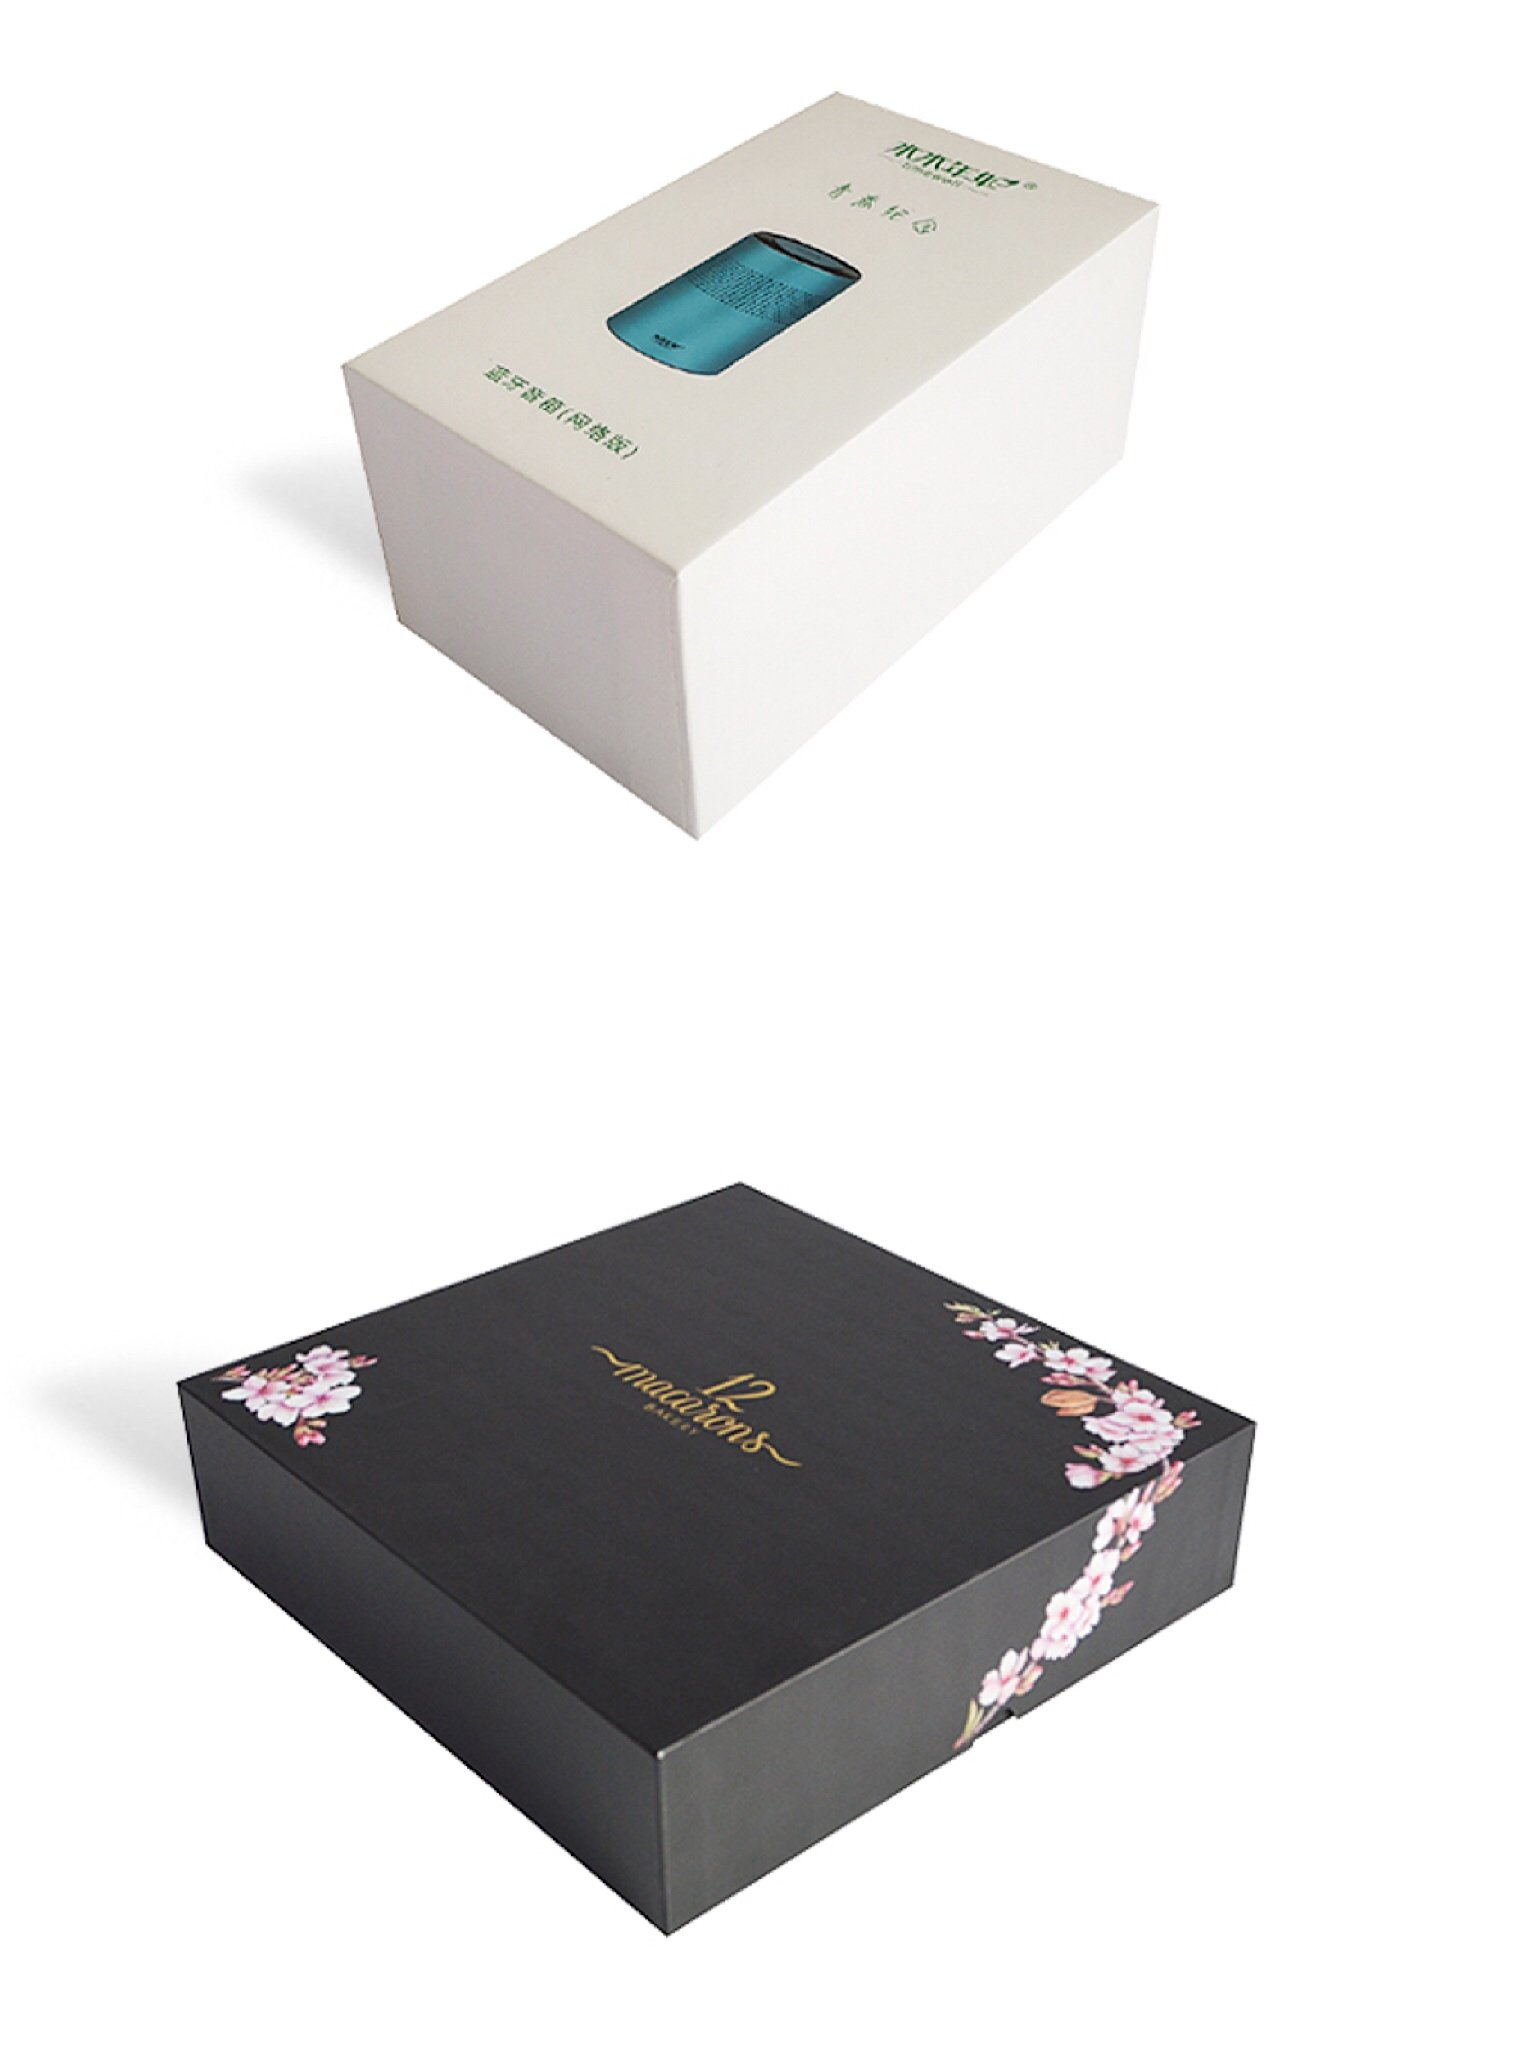 retail cardboard gift boxes